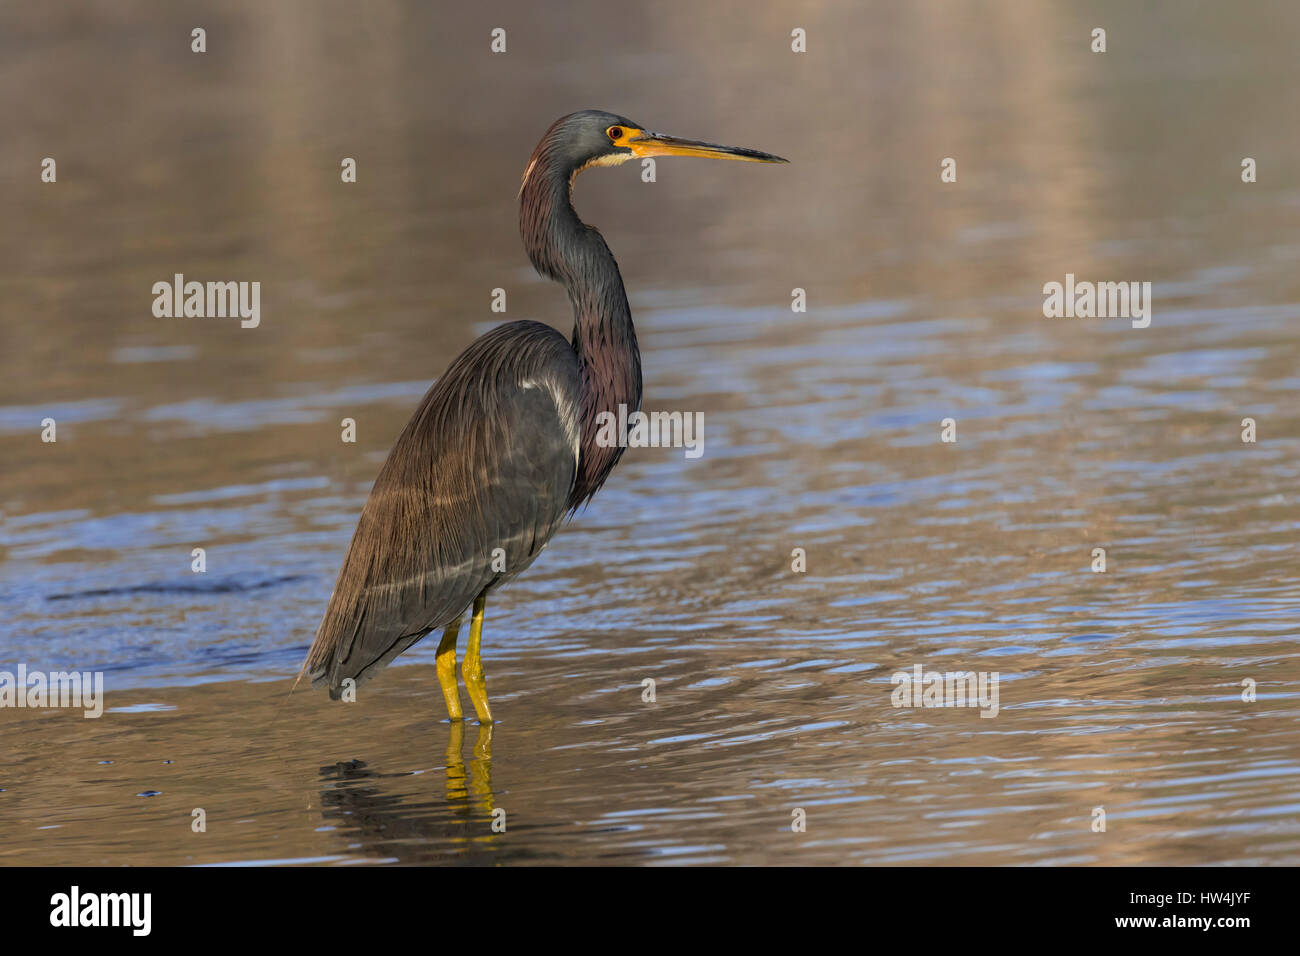 Tricolored Heron (Egretta tricolor) standing in water, Wakulla Springs State Park, FL, USA - Stock Image